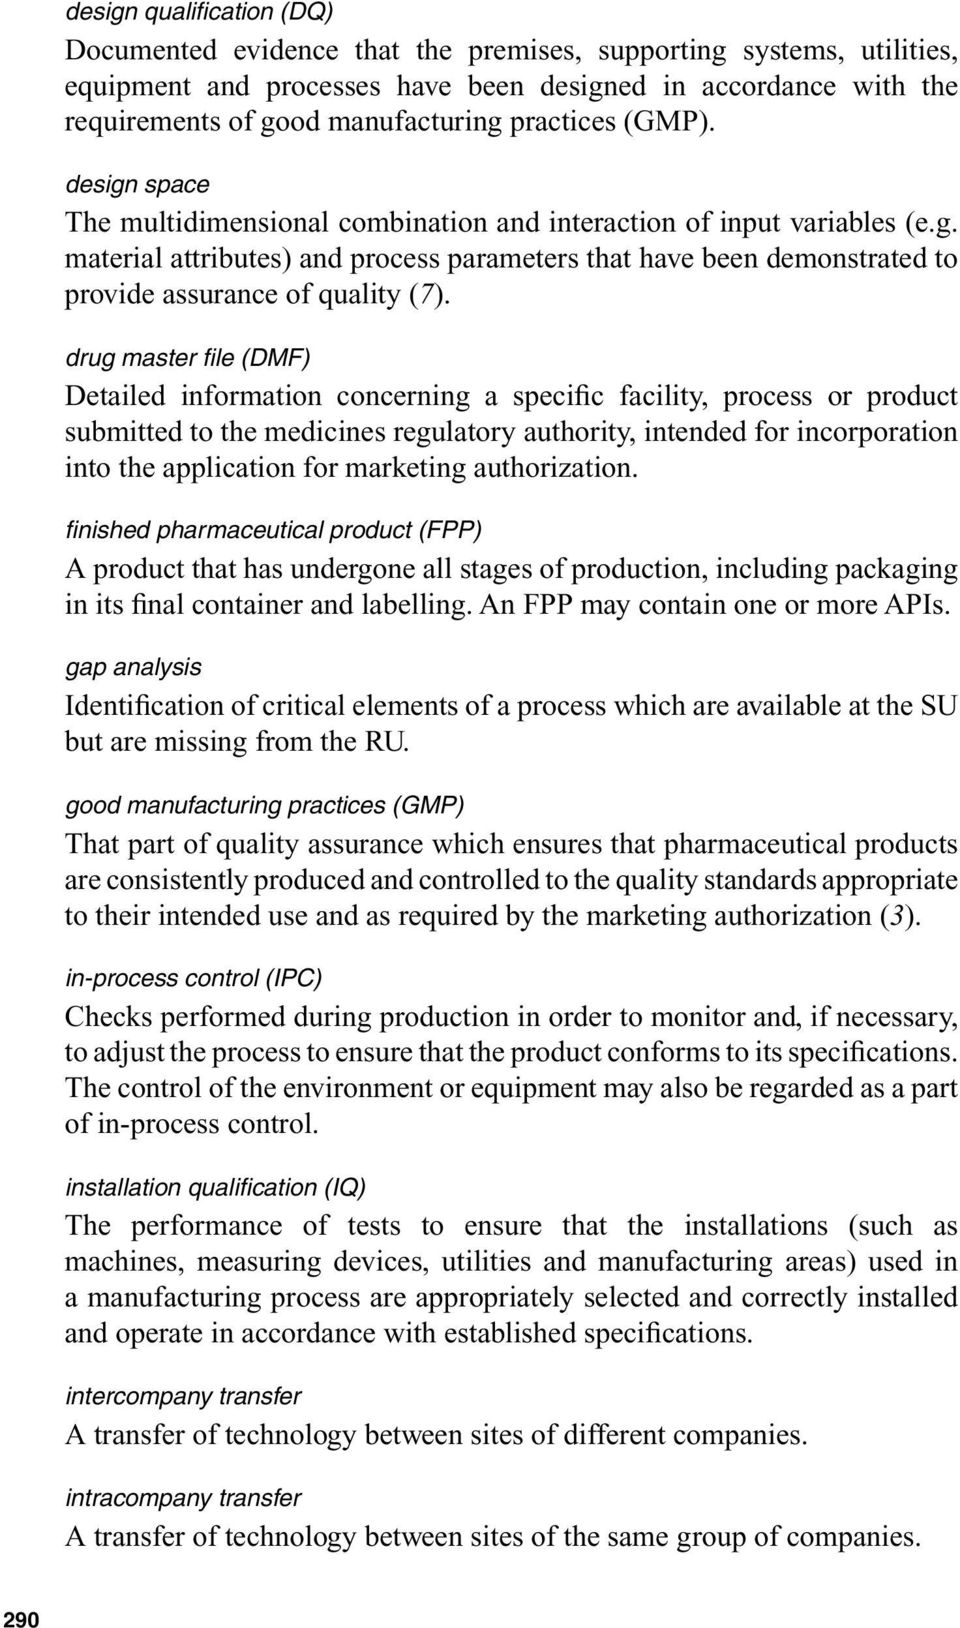 Manufacturing manufacture devices for control and regulation of technological processes